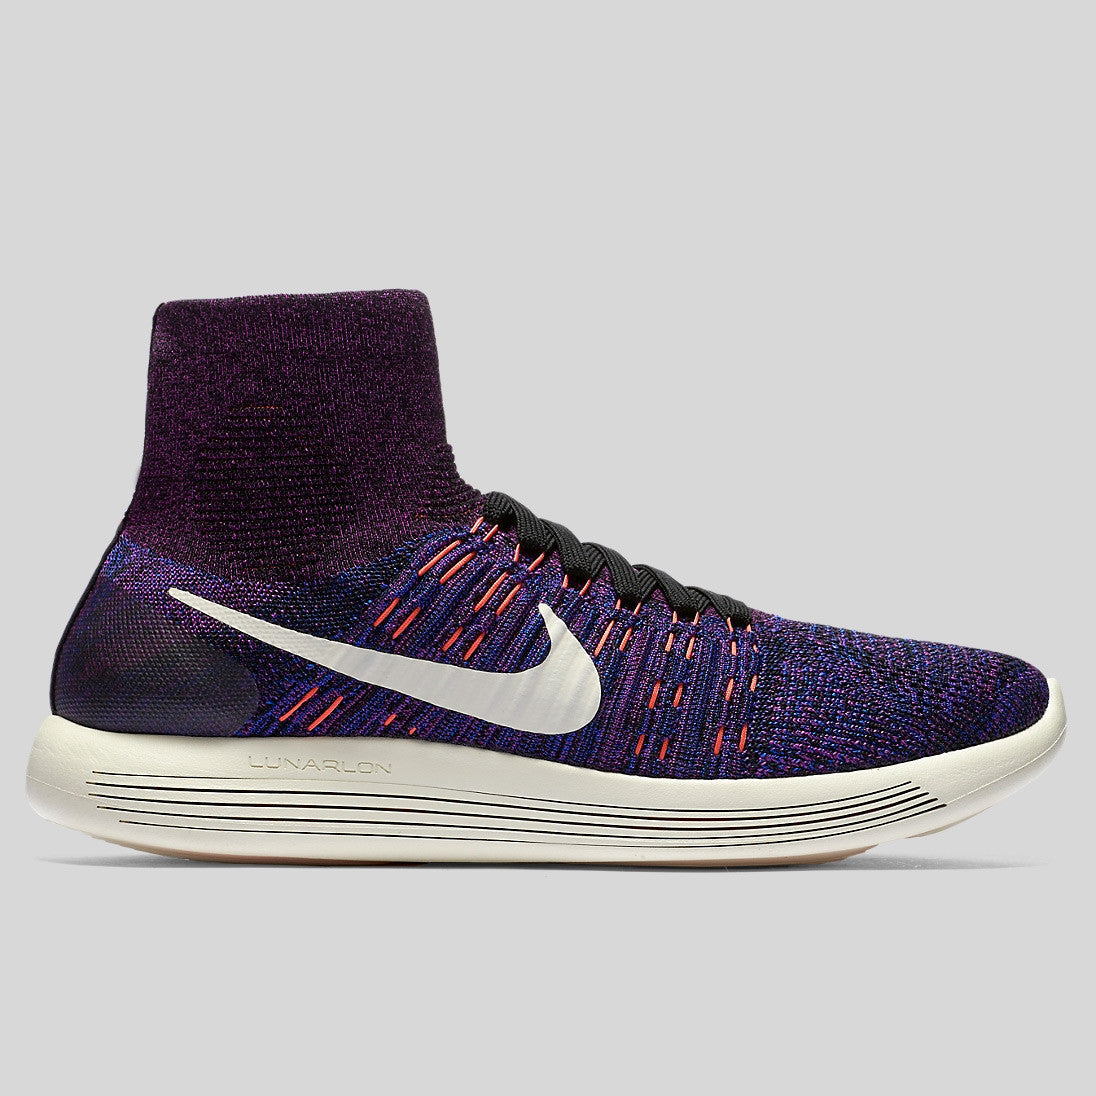 2c66b8922039 Nike Lunarepic Flyknit Vivid Purple Total Crimson (818676-004)